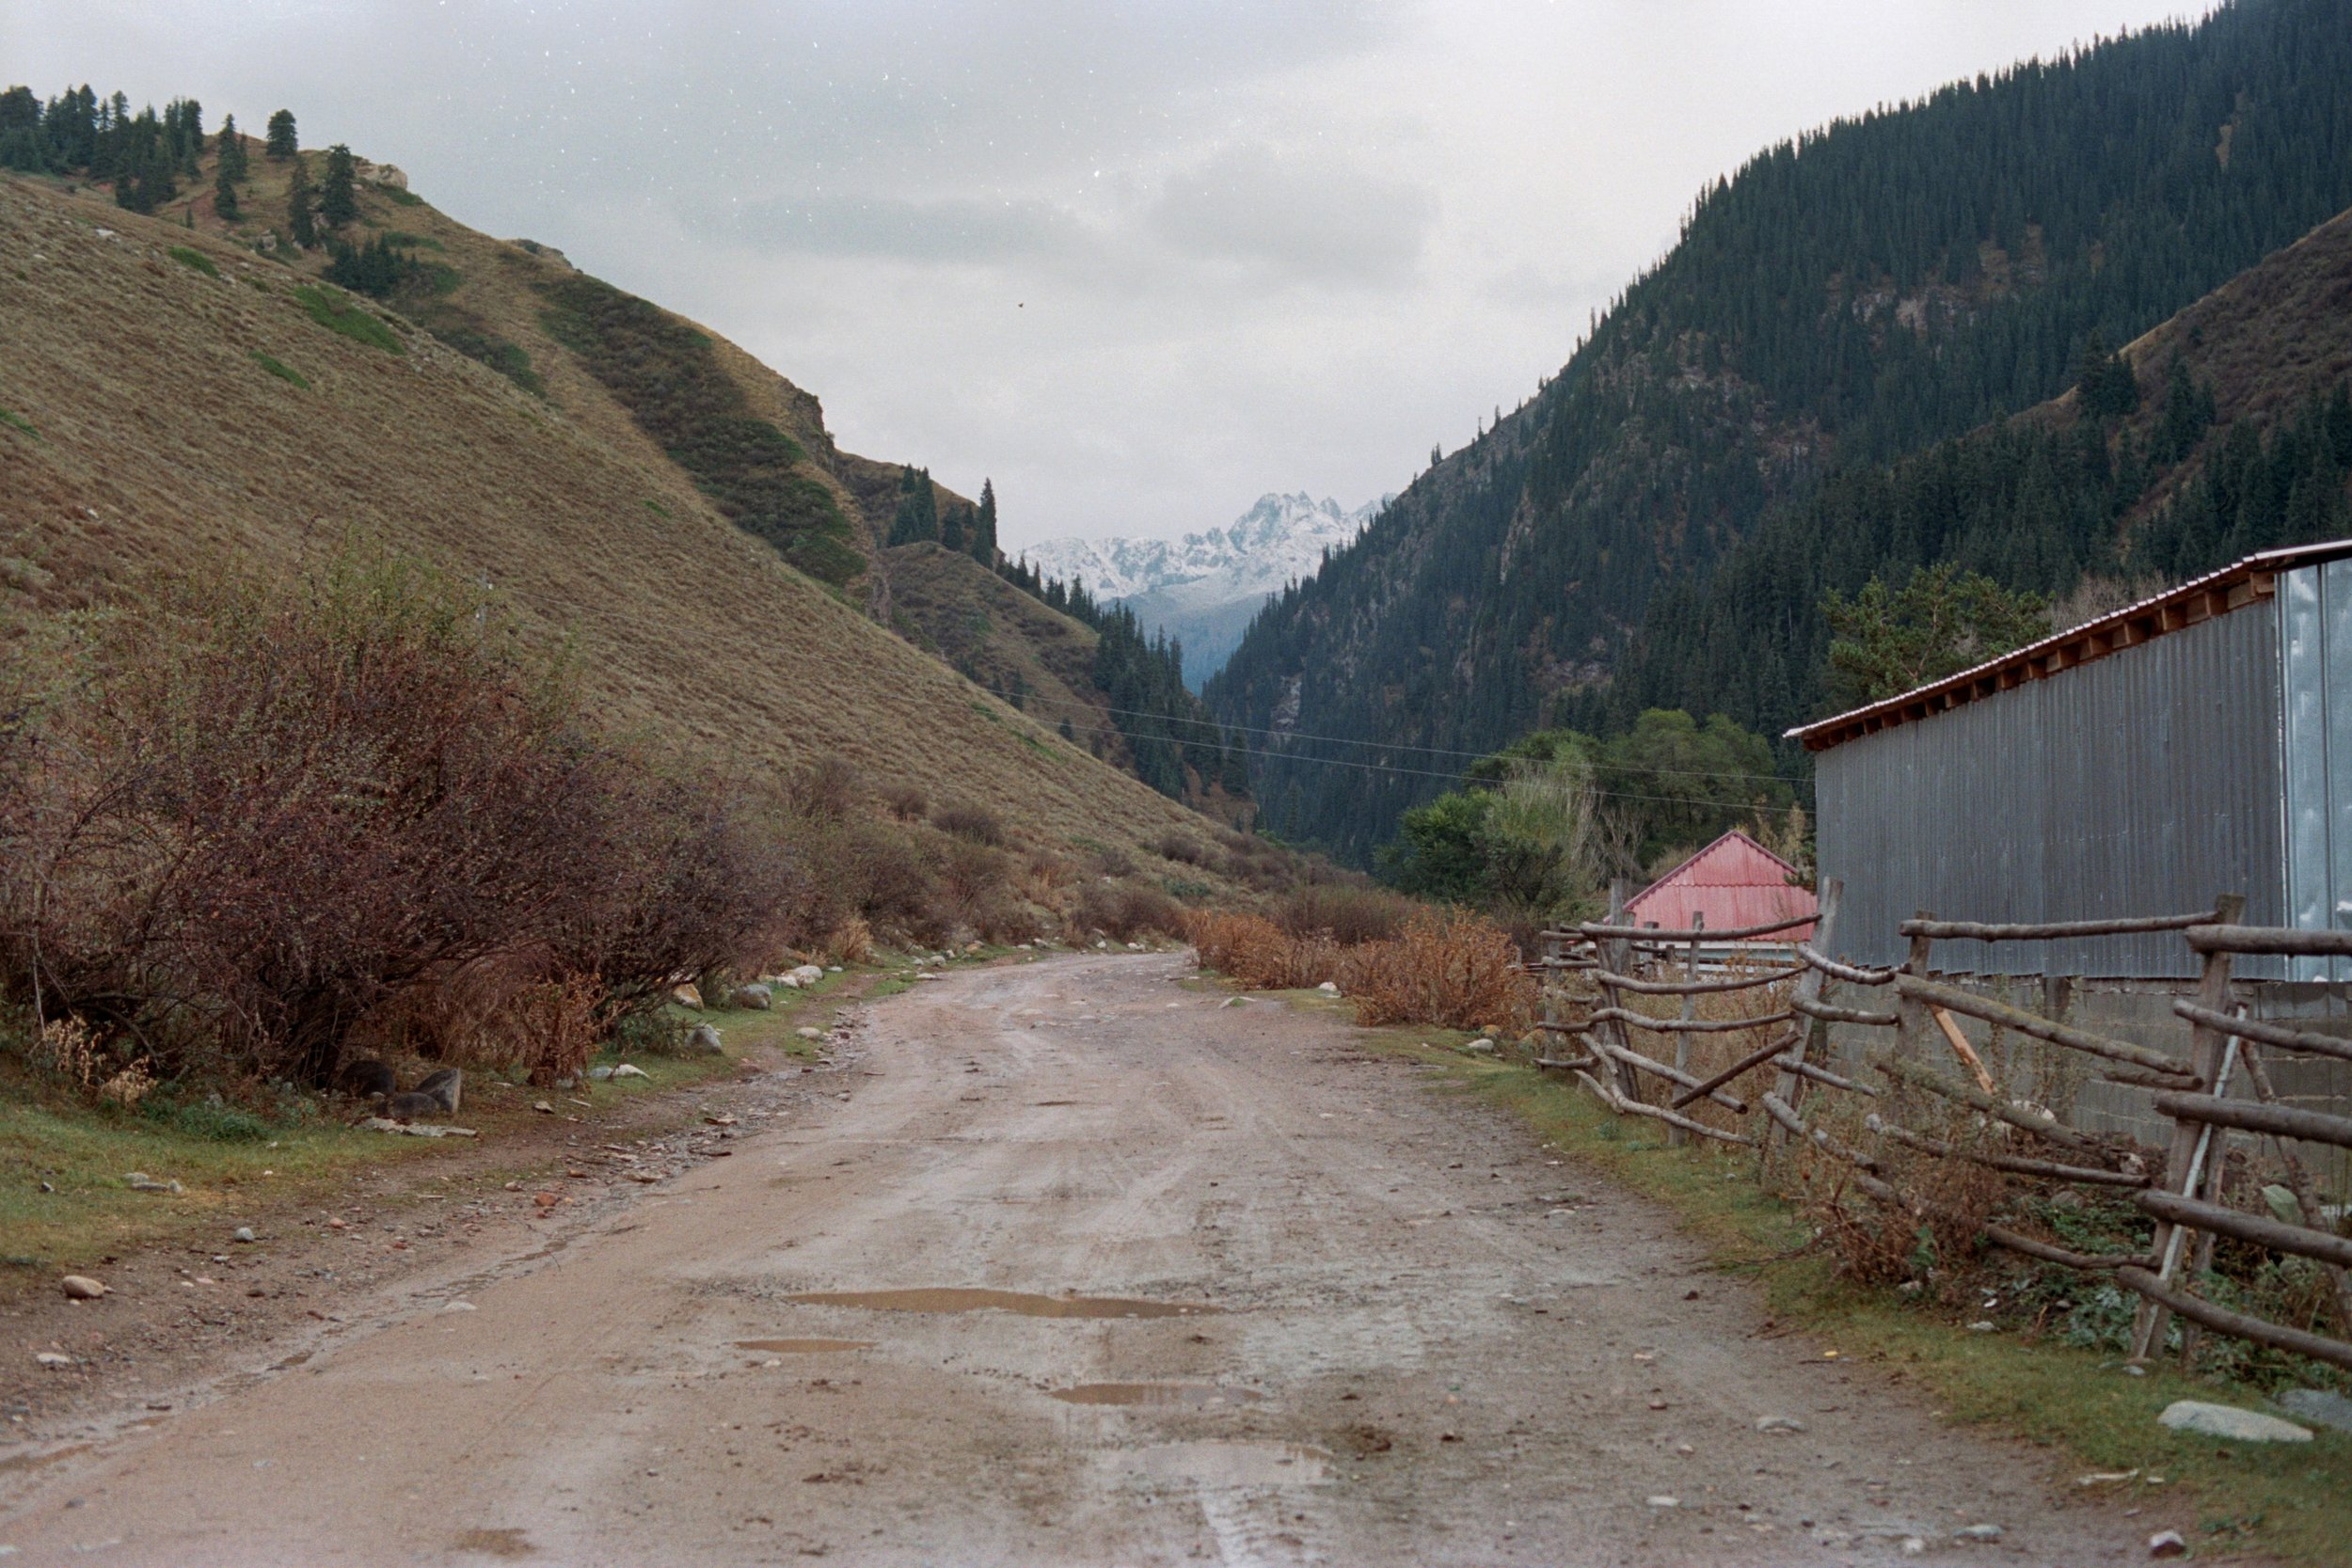 We're entering Jetti-Oghuz park to find a camping spot for the night. The landscape reminds me of the Alps.